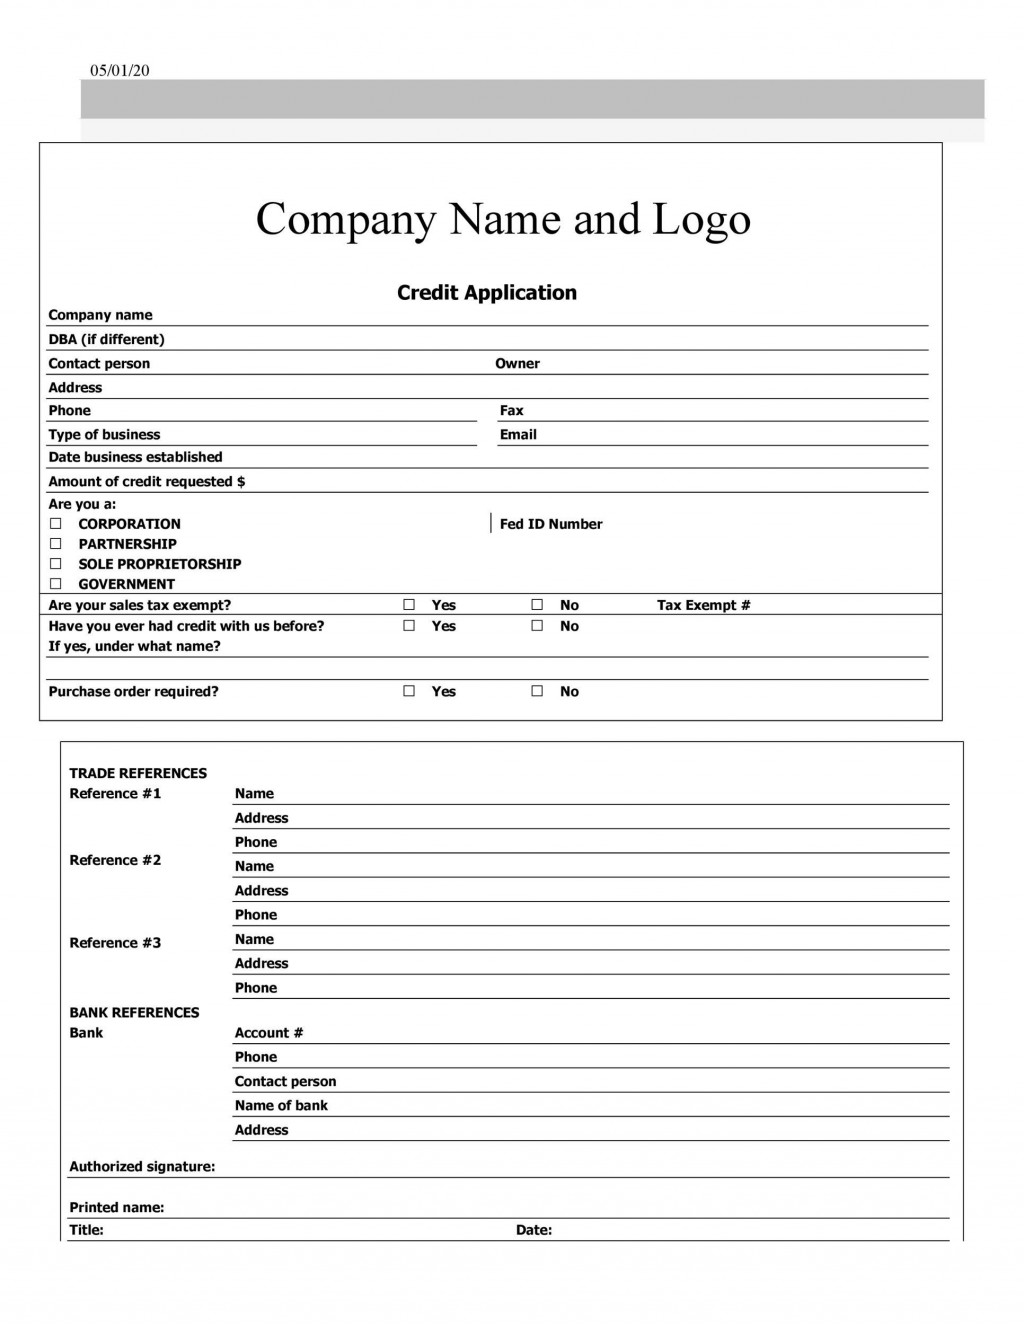 007 Excellent New Customer Account Application Form Template Image  Busines Uk OpeningLarge